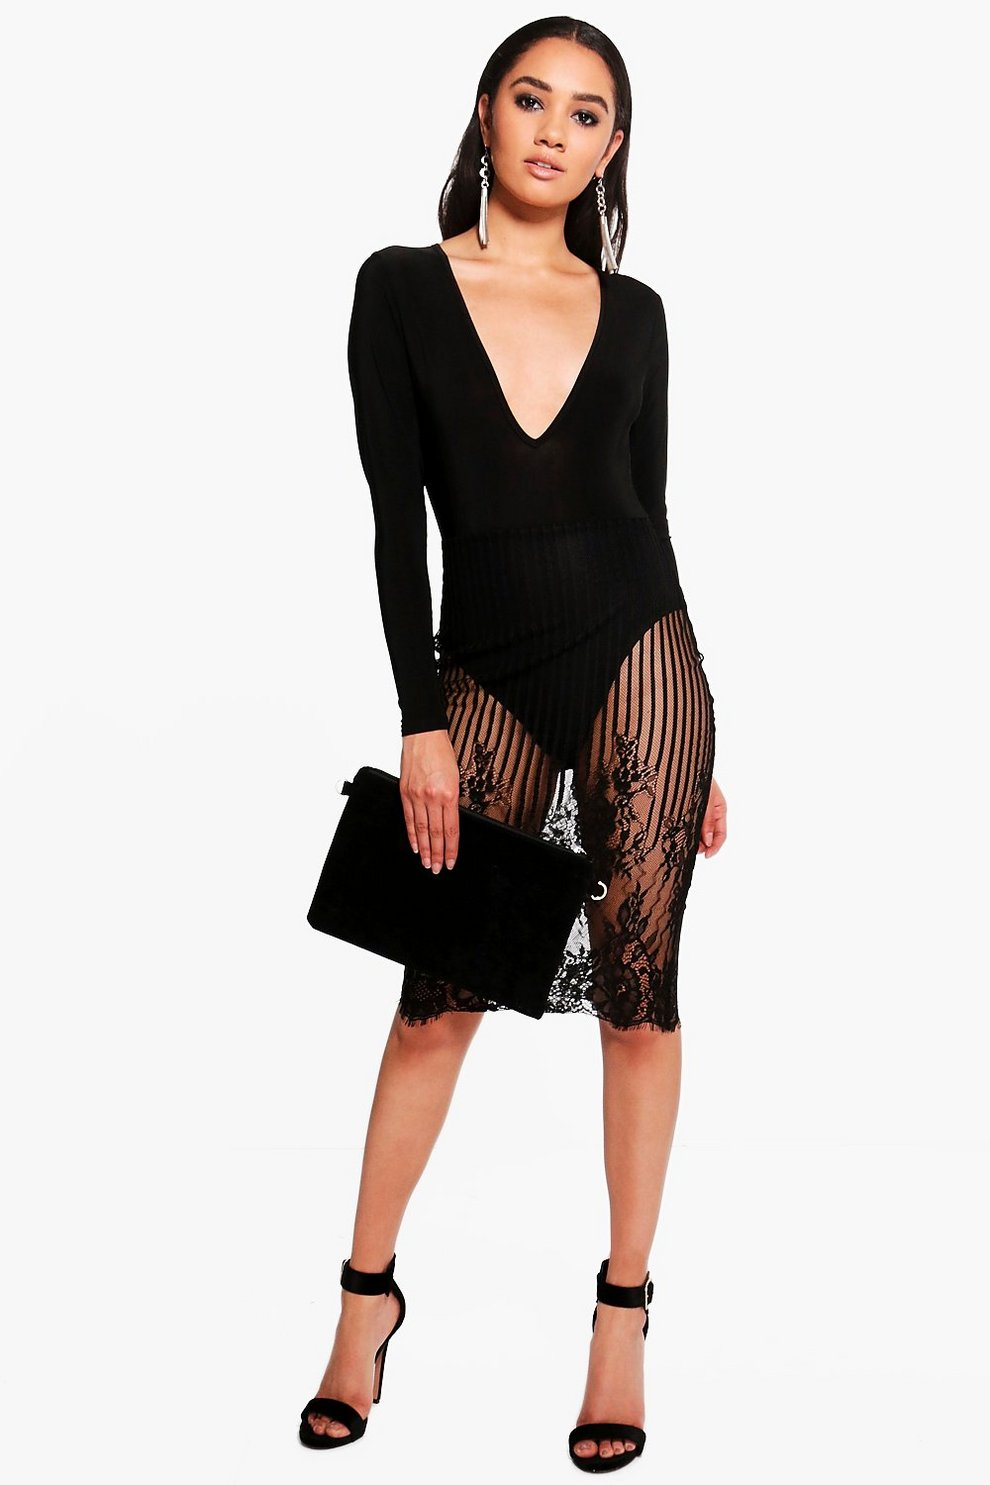 7a7803773acb Boohoo Long Sleeve Black Lace Midi Dress – Little Black Dress ...